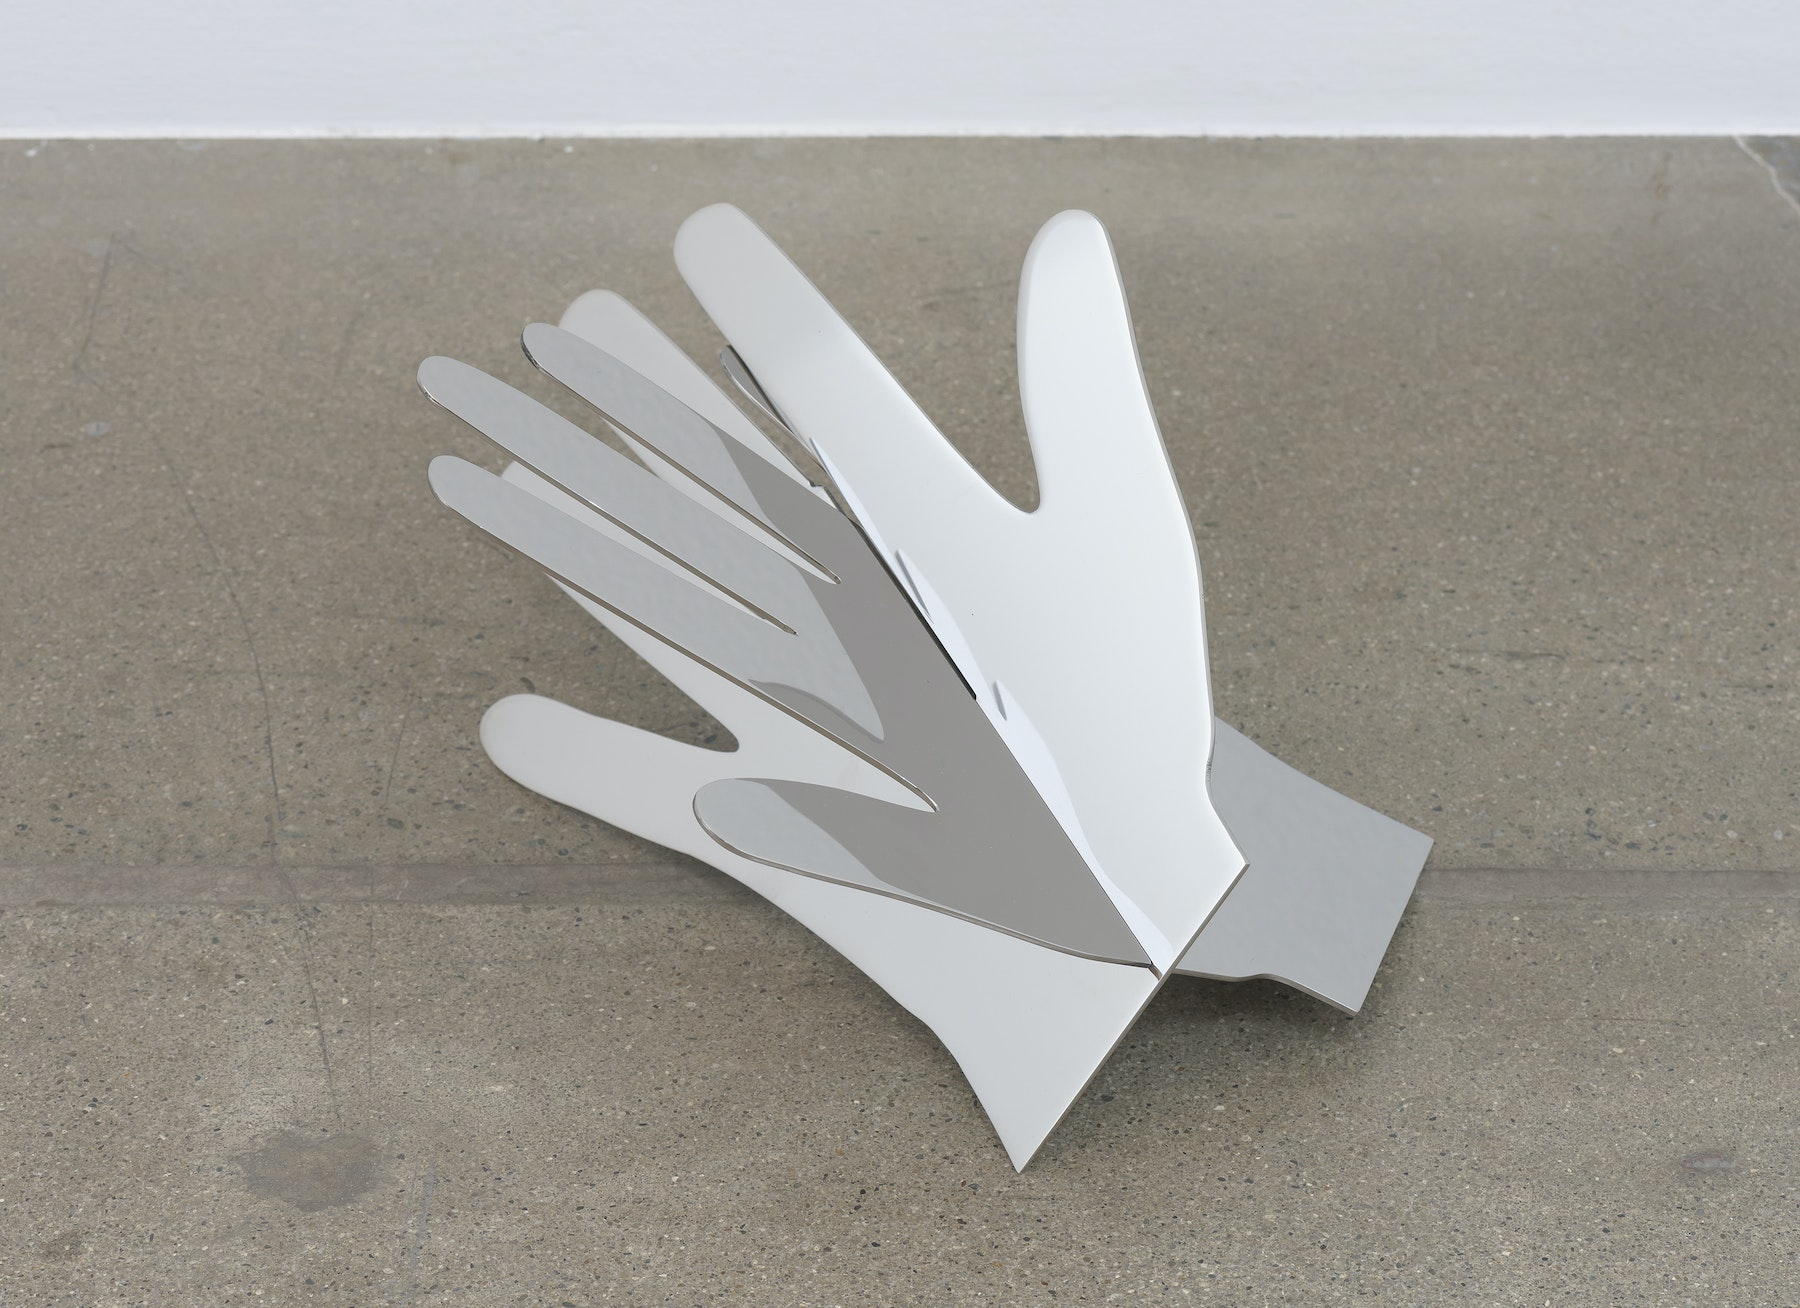 "Shana Lutker ""Hands(G),"" 2017 Stainless steel 14 x 9 x 8"" [HxWxD] (35.56 x 22.86 x 20.32 cm) Inventory #LUT296 Courtesy of the artist and Vielmetter Los Angeles Photo credit: Robert Wedemeyer"